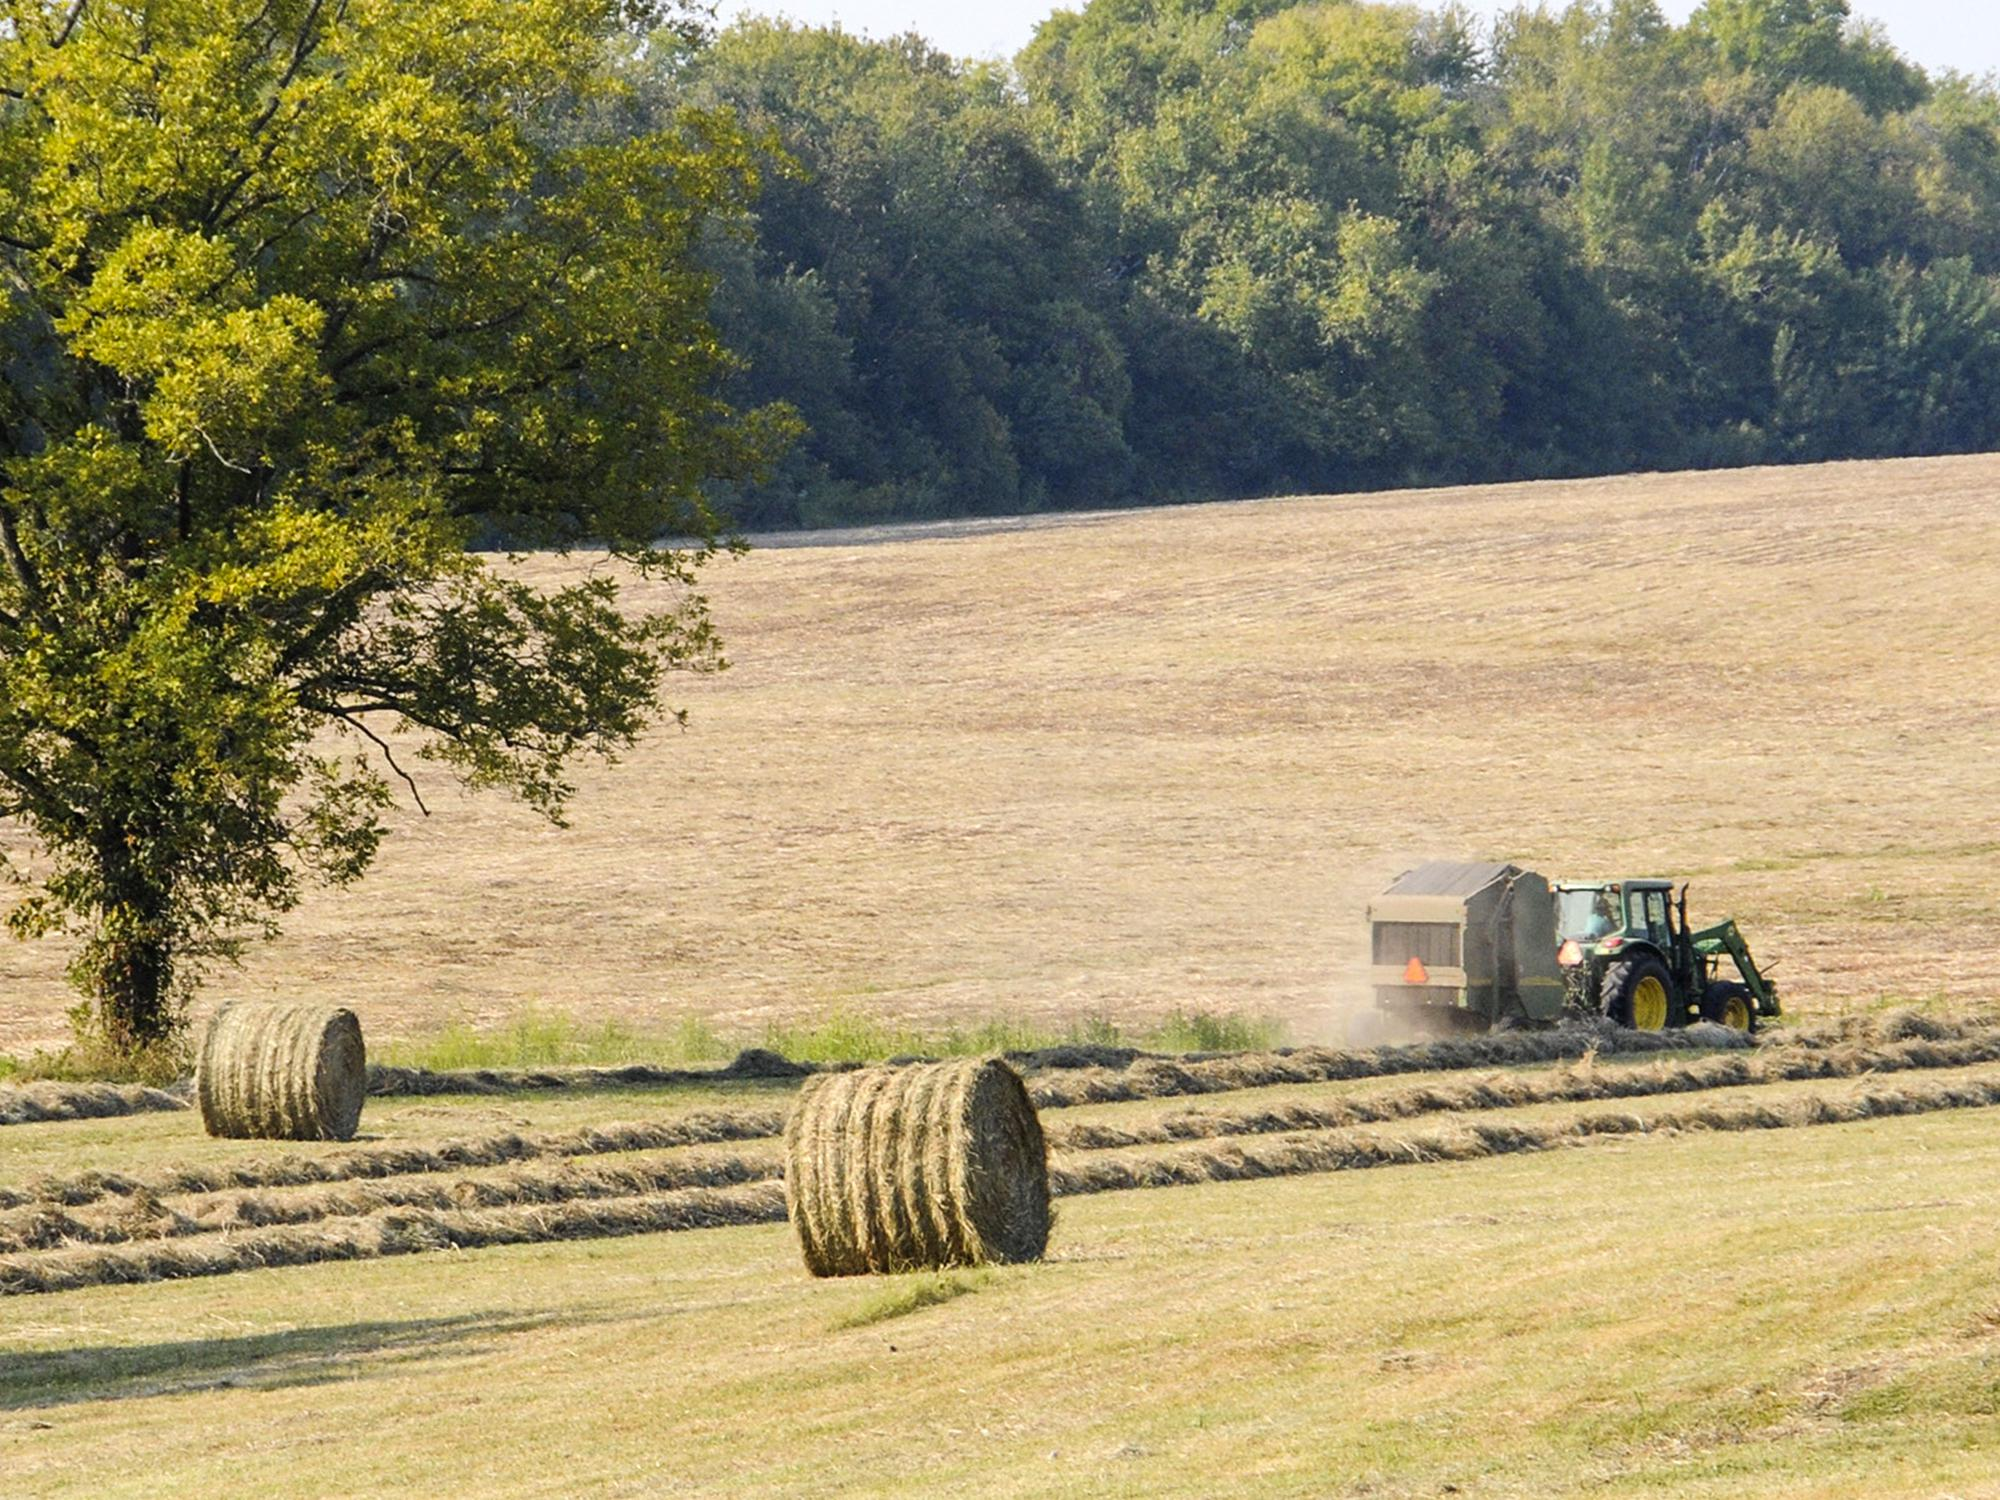 Mississippi hay supplies are expected to be low going into winter. Factors that contributed to low production include a very cold winter, a wet spring and an abundance of armyworms. (Photo by MSU Ag Communications/Scott Corey)